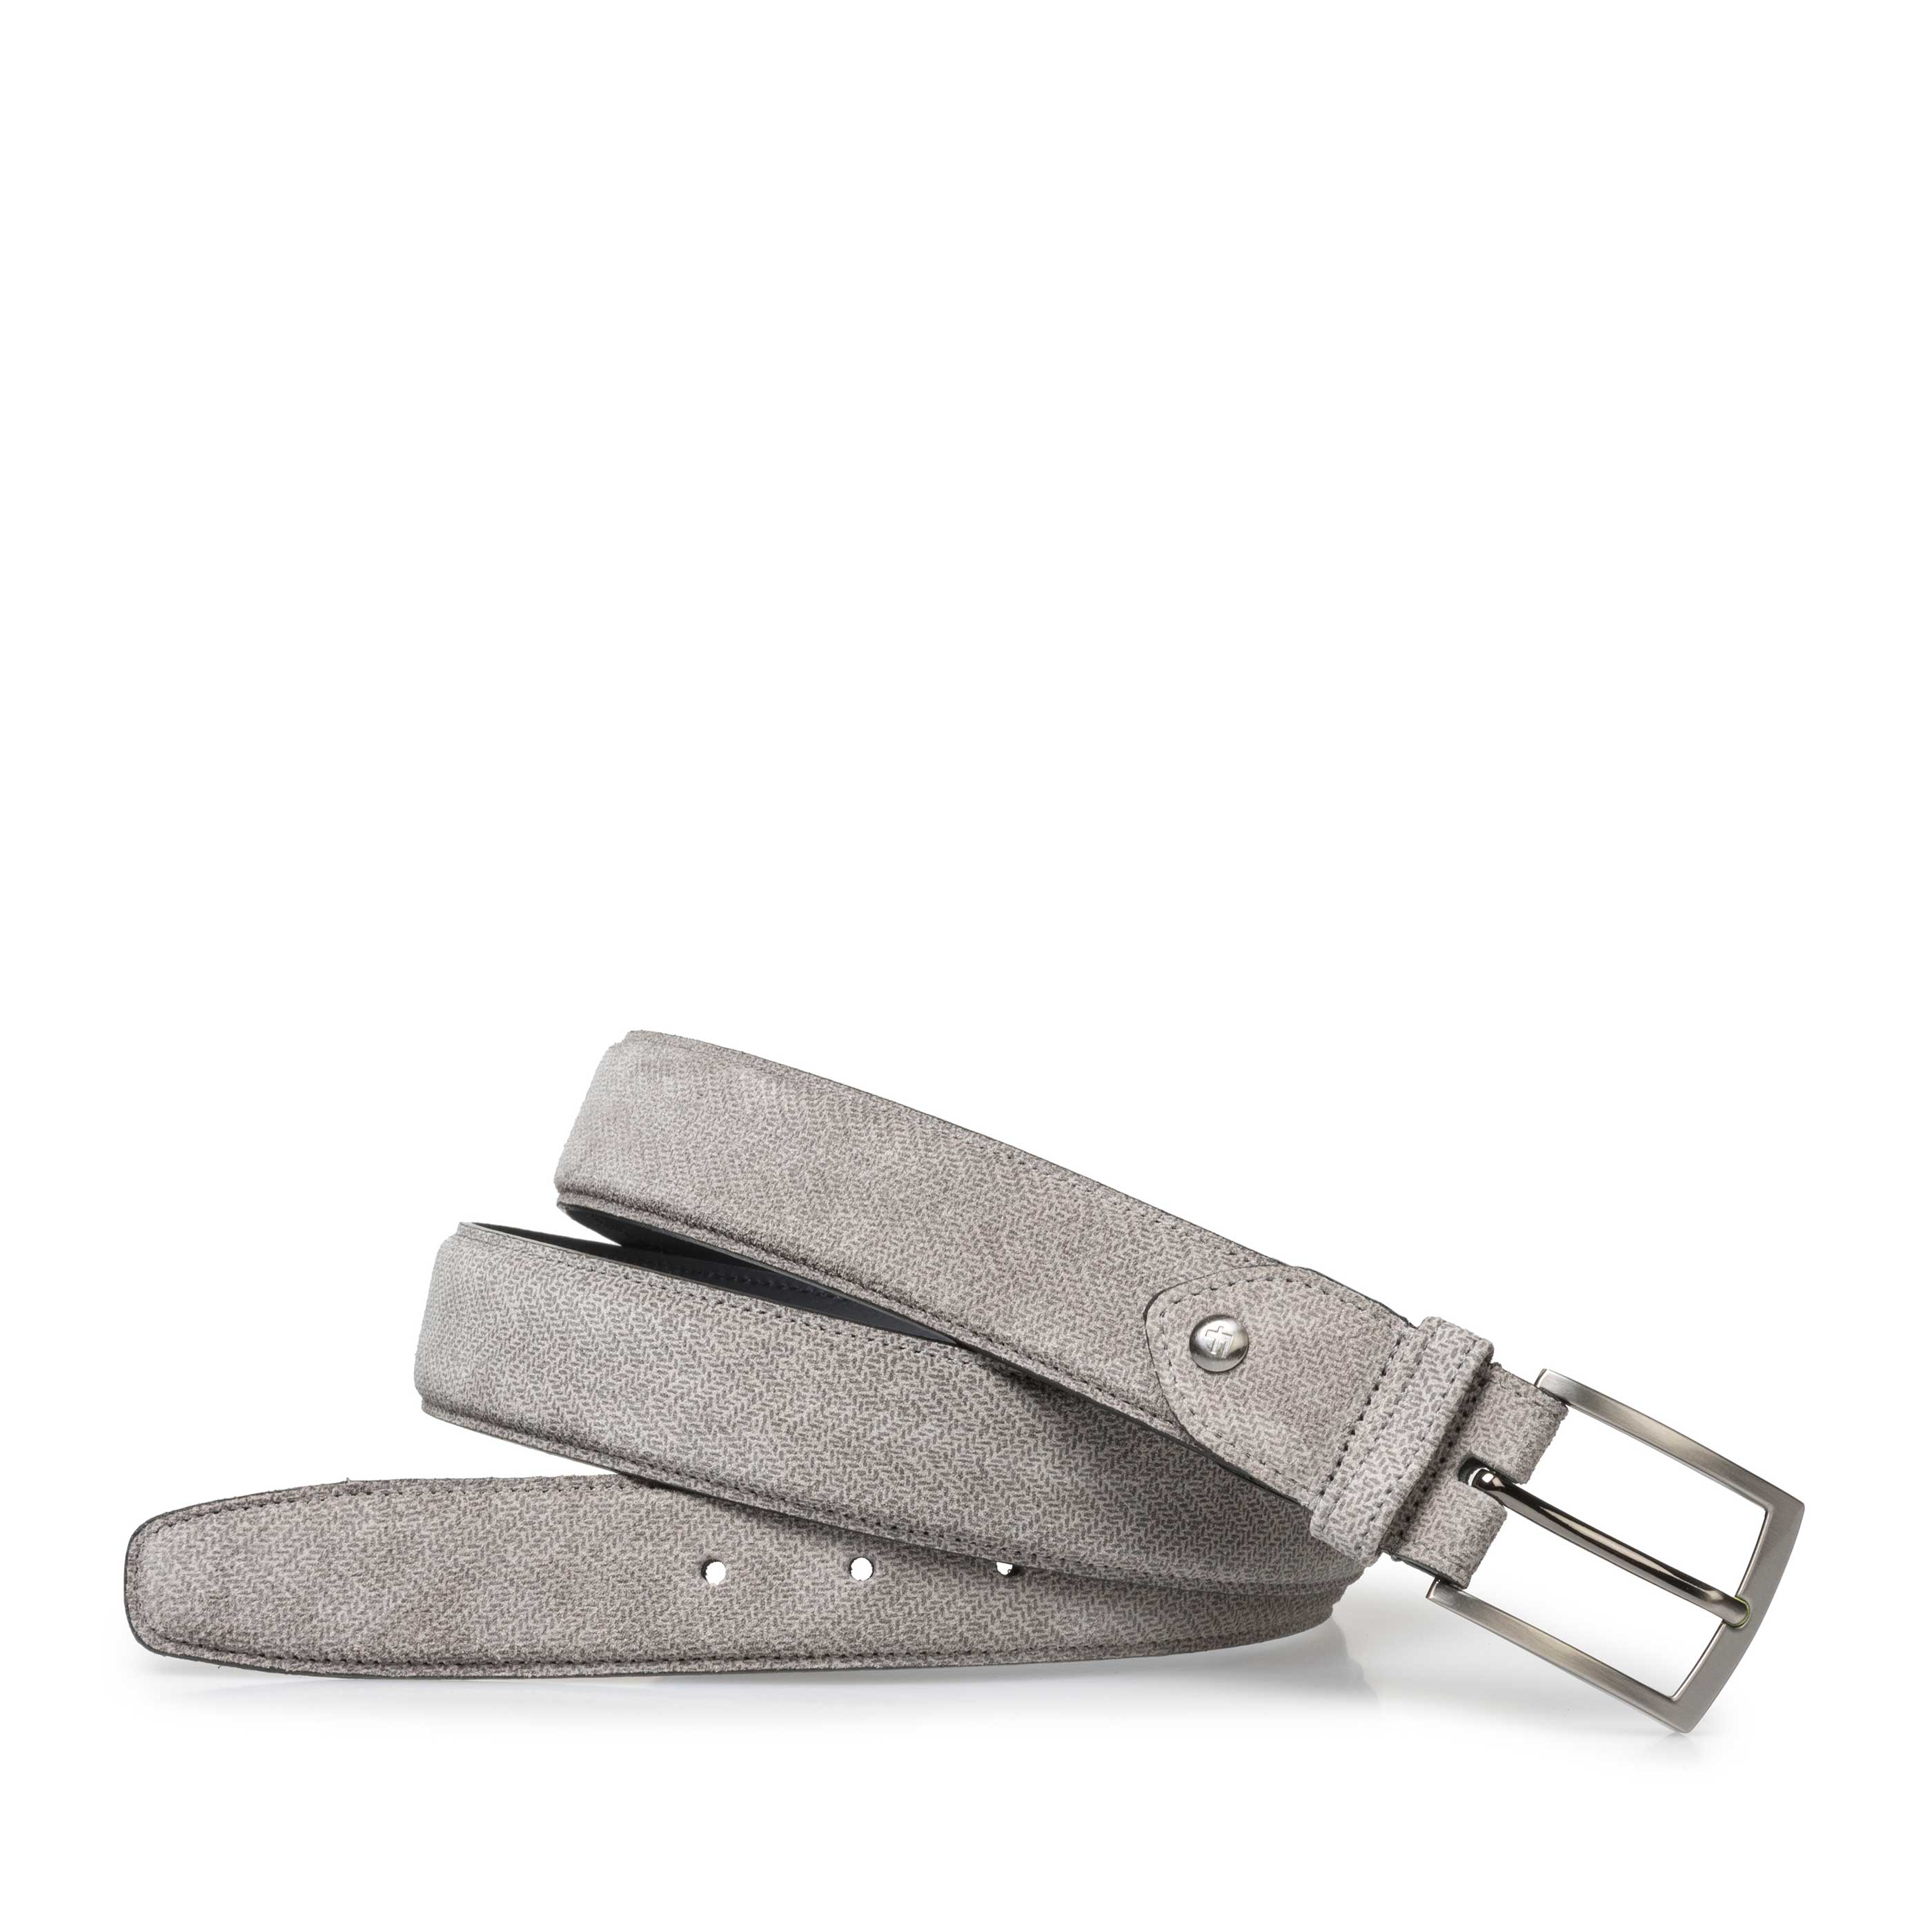 75201/73 - Light grey suede leather belt with print